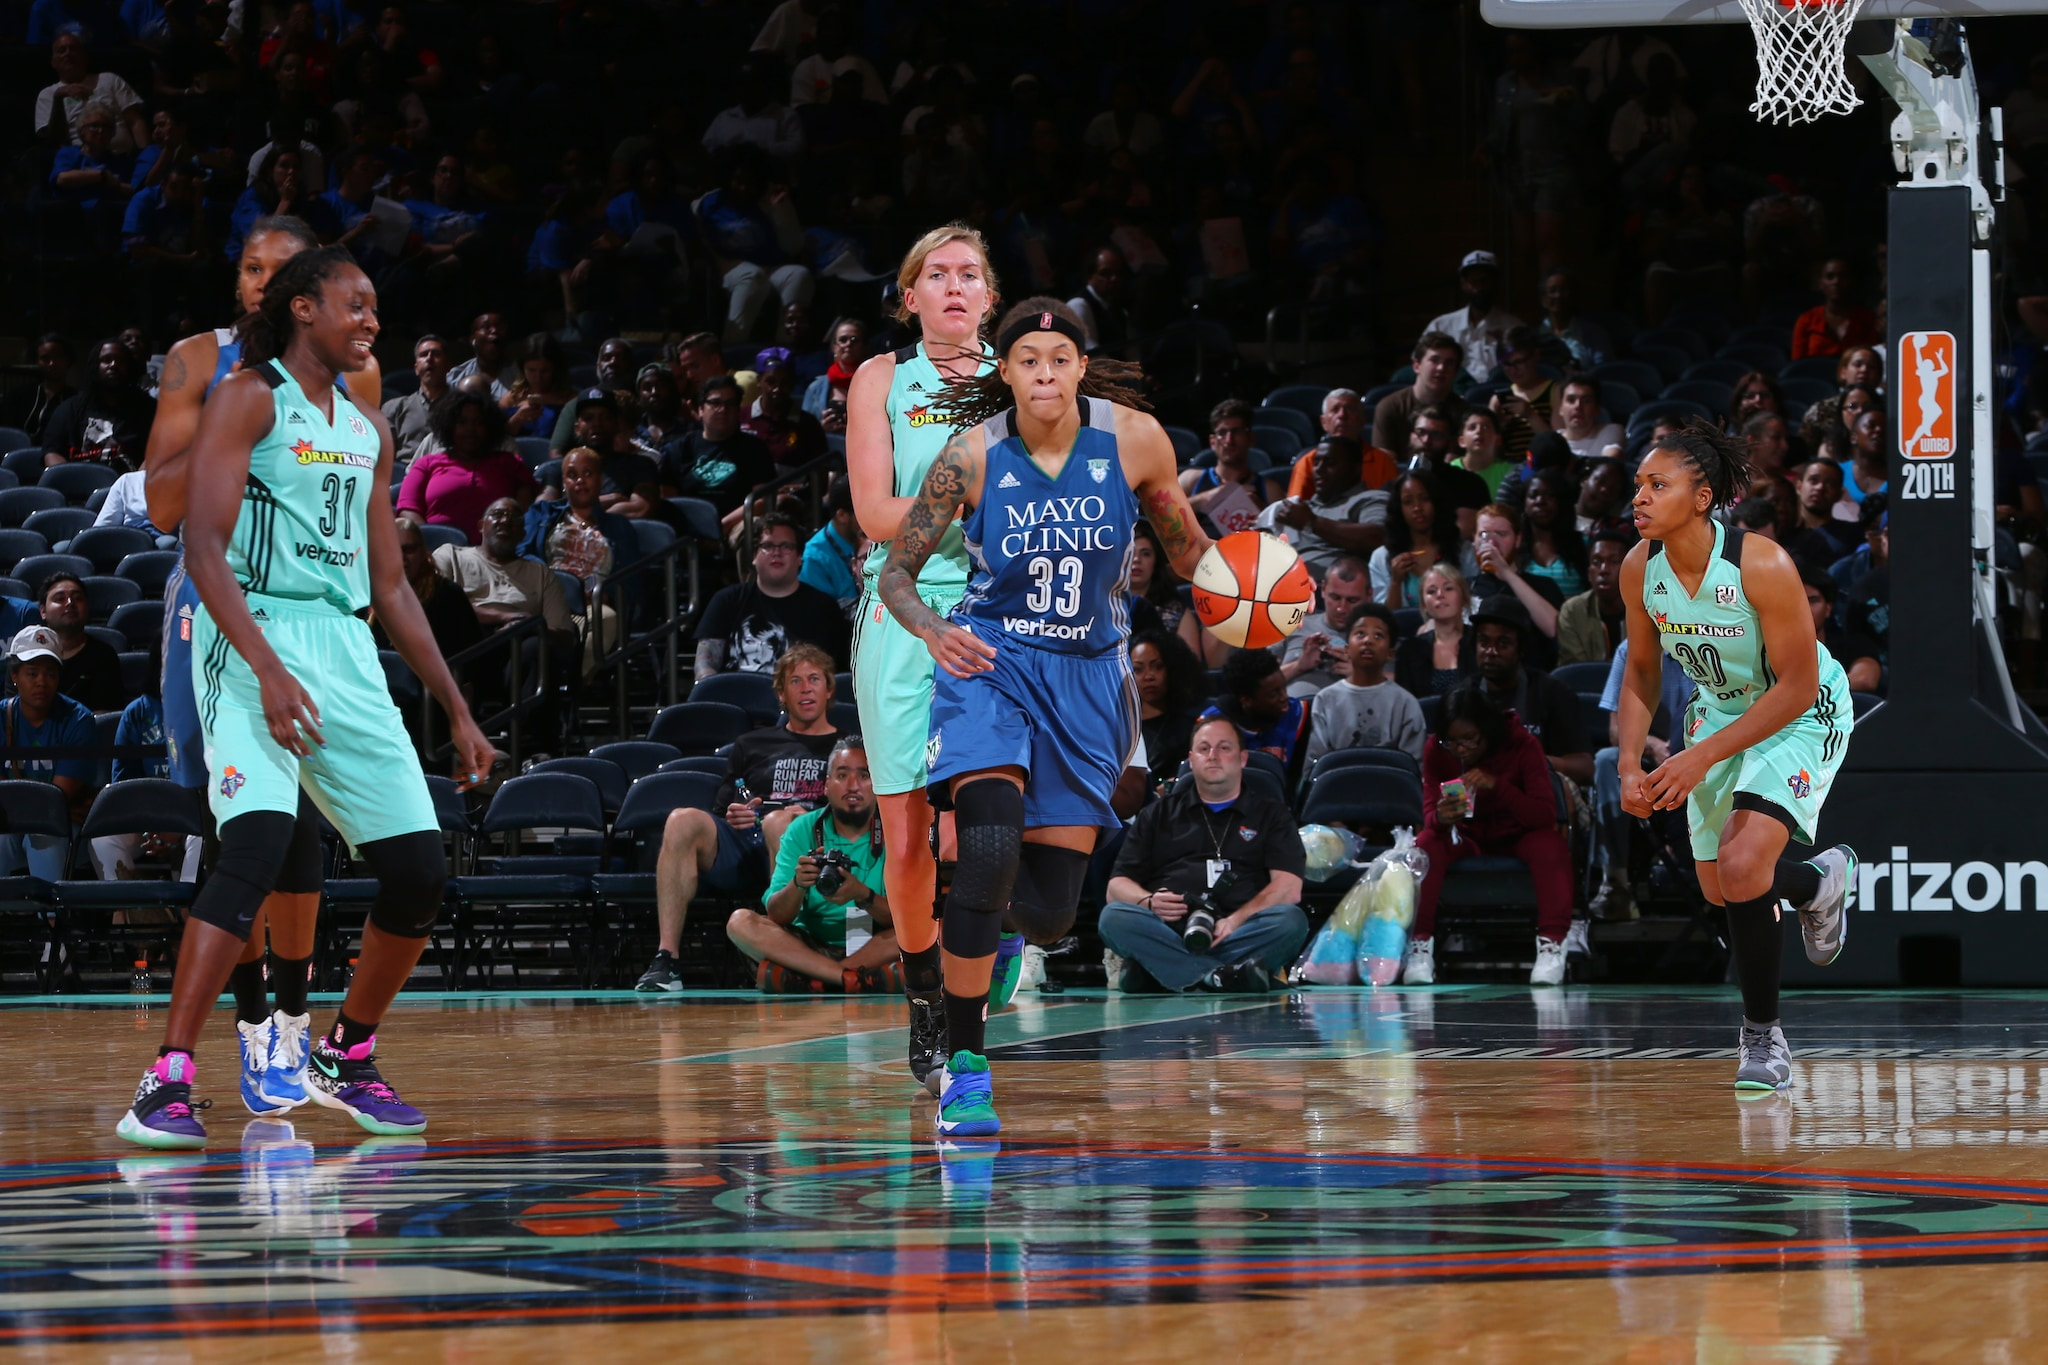 NEW YORK, NY - MAY 31: Seimone Augustus #33 of the Minnesota Lynx drives to the basket against the New York Liberty during the game on May 31, 2016 at Madison Square Garden in New York, New York. NOTE TO USER: User expressly acknowledges and agrees that, by downloading and or using this Photograph, user is consenting to the terms and conditions of the Getty Images License Agreement. Mandatory Copyright Notice: Copyright 2016 NBAE (Photo by Mike Stobe/NBAE via Getty Images)